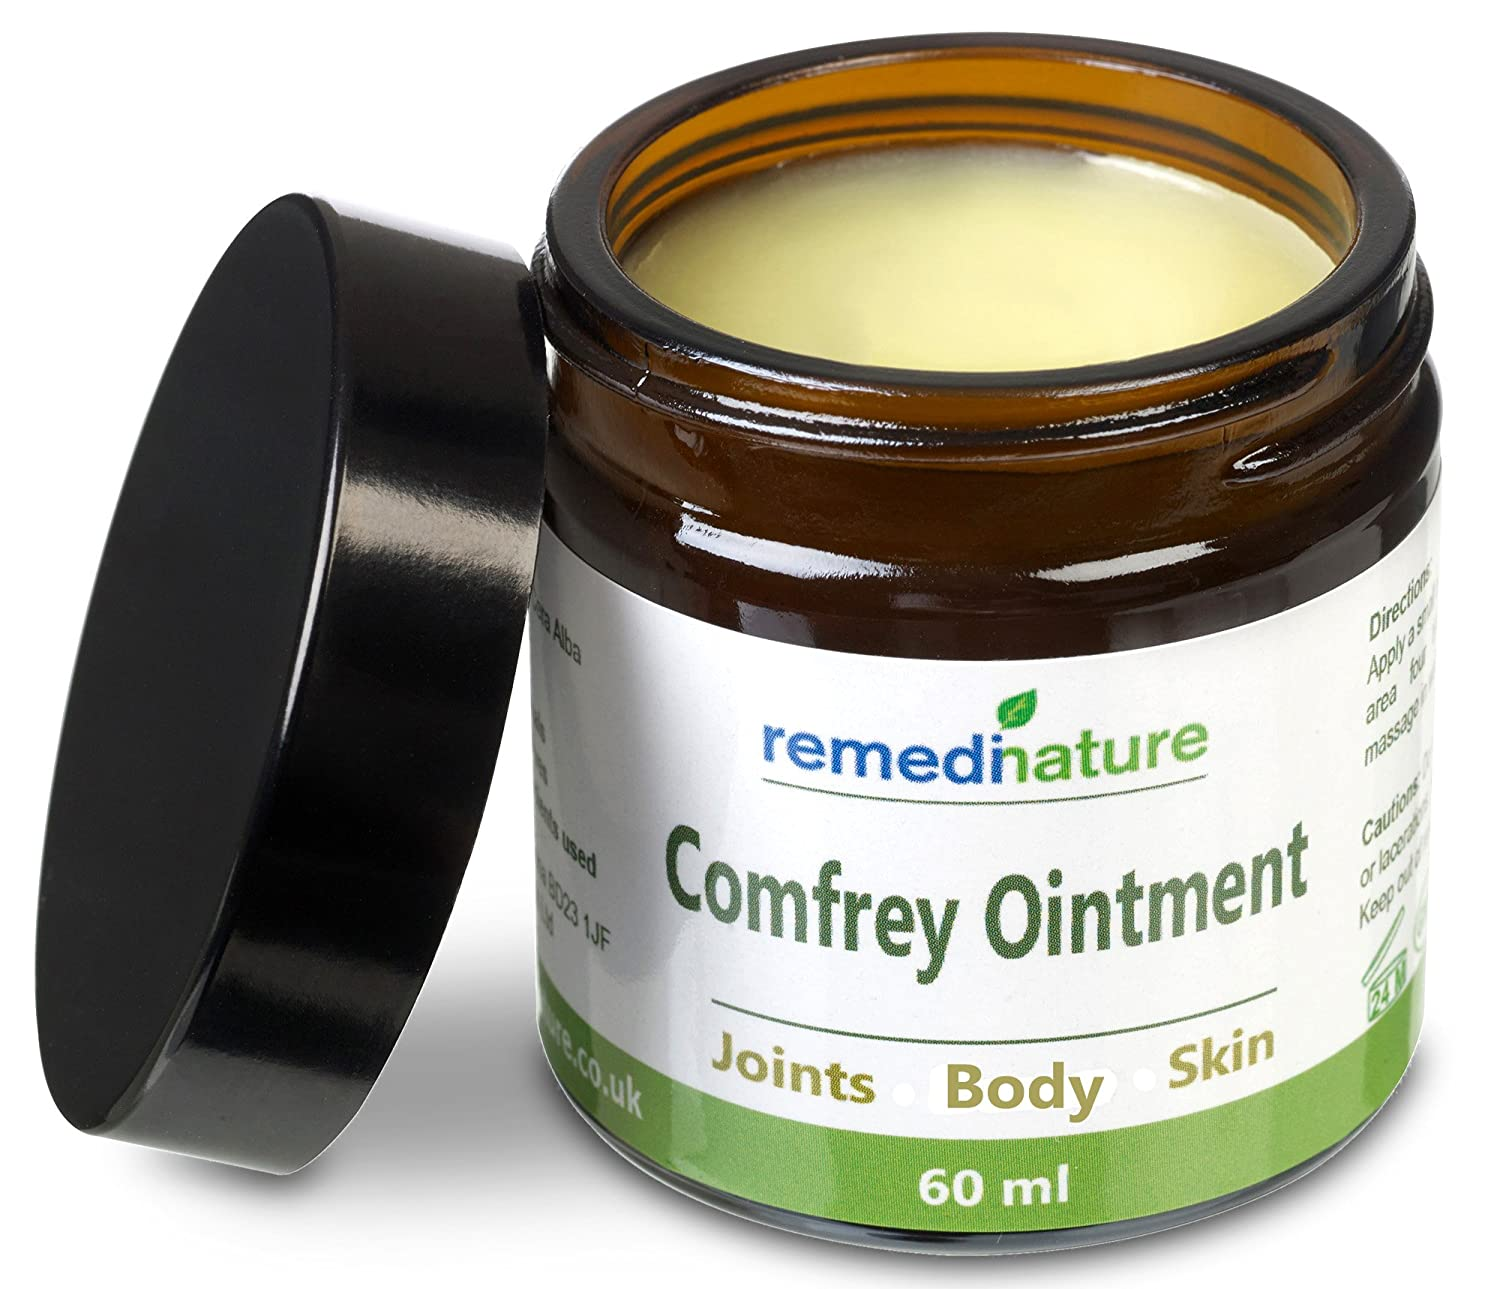 Remedinature Comfrey Ointment 60ml: Natural Odourless Body Joint Skin Balm Avena Remedies